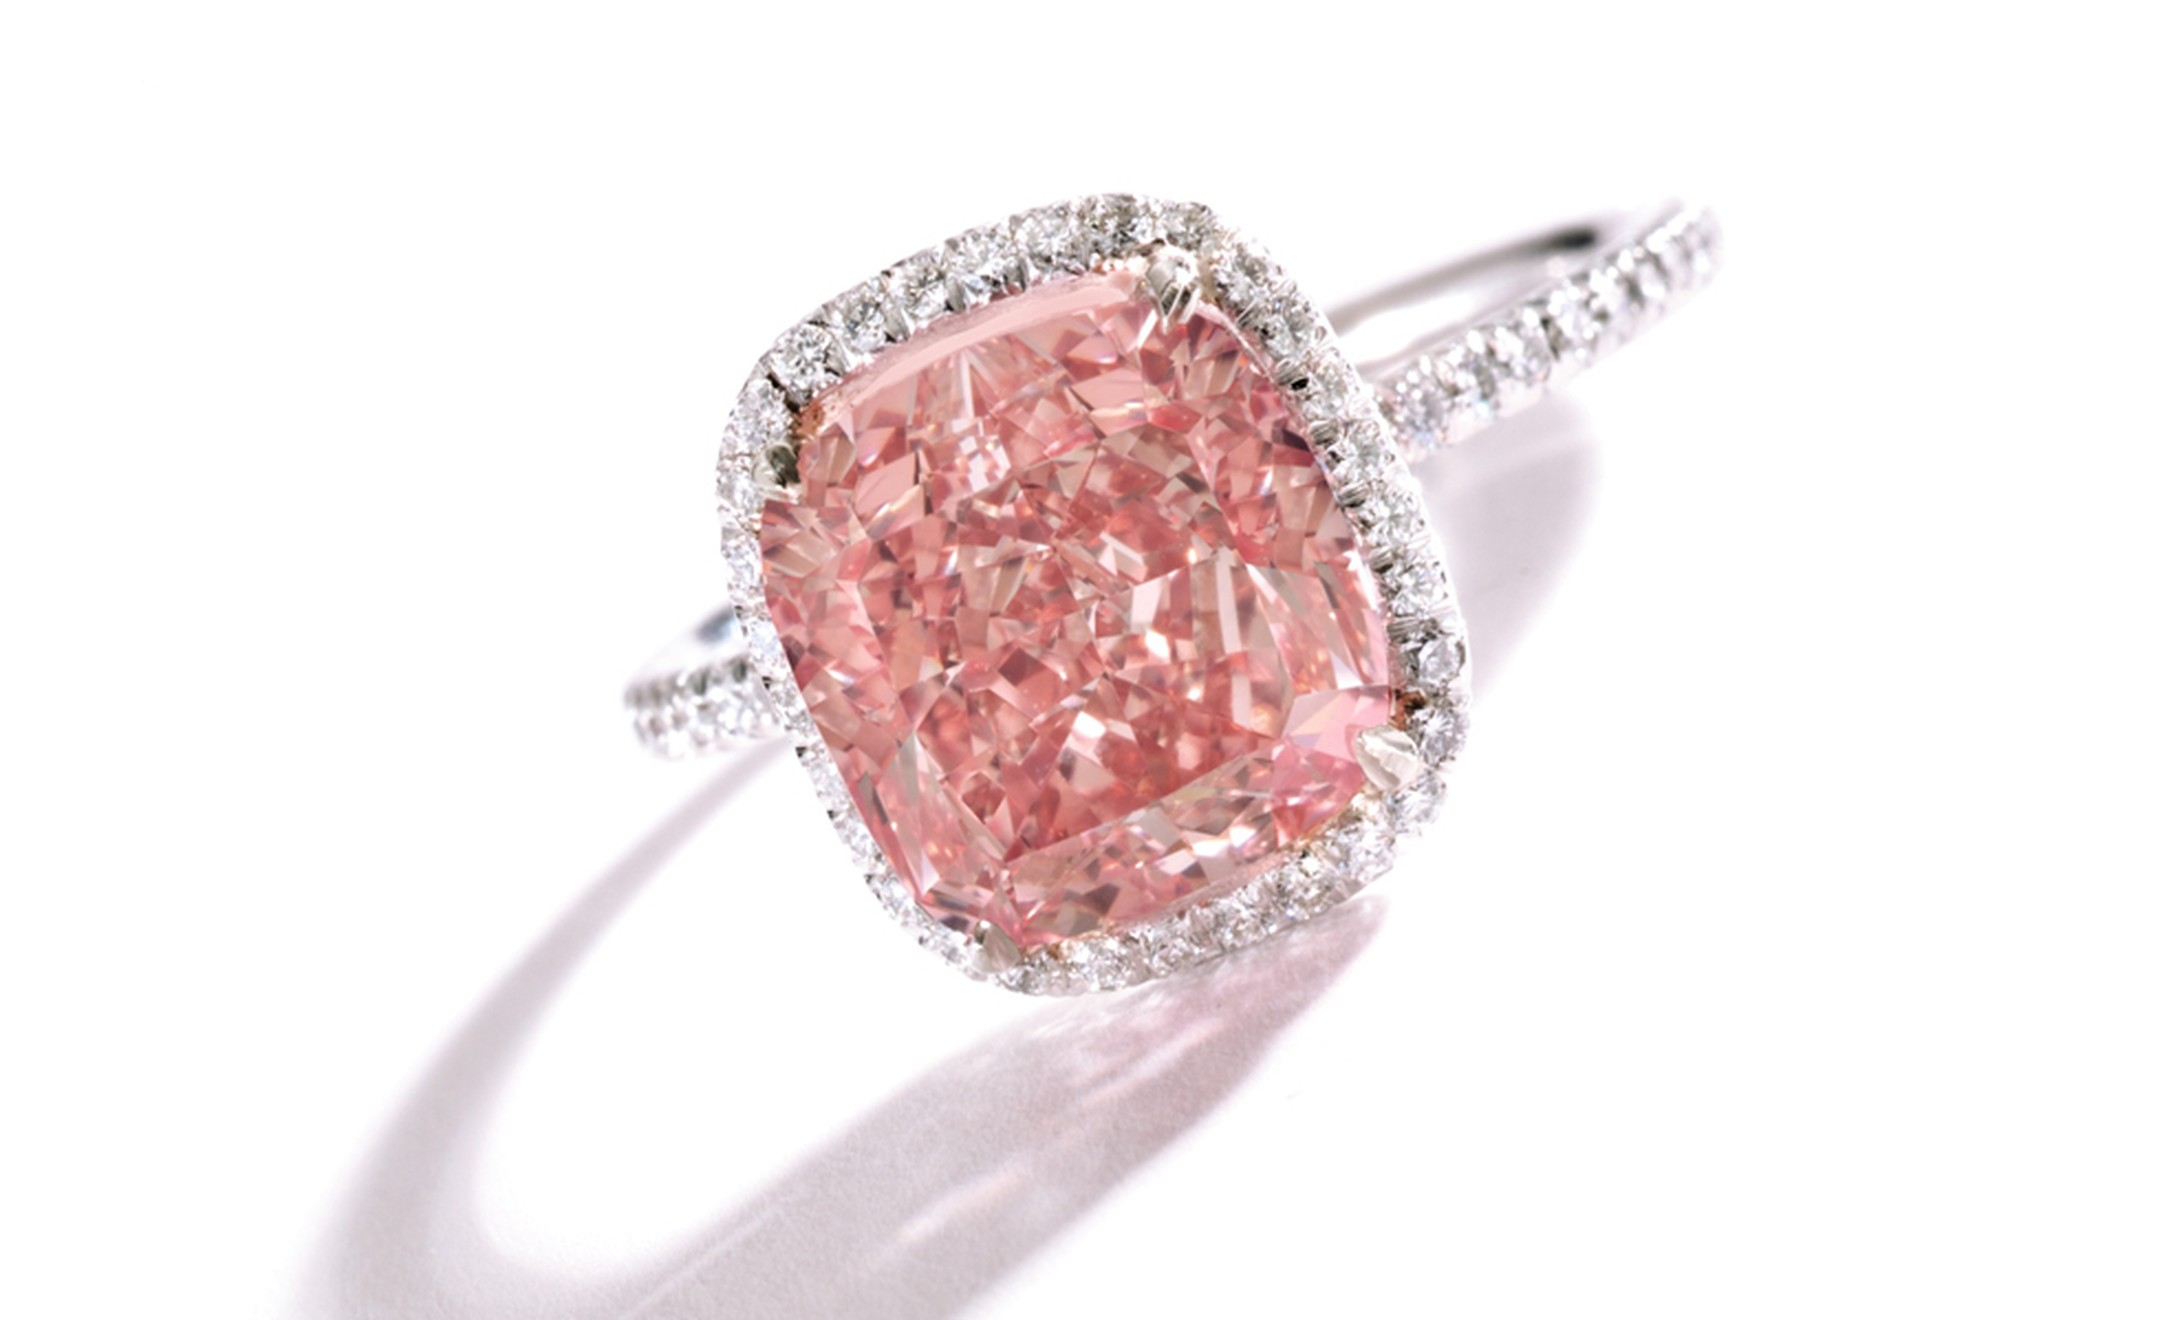 Lot 337 A Magnificent and Rare Fancy Vivid Pink Diamond Ring Est. $1.5/2 million. SOLD FOR $1,874,500